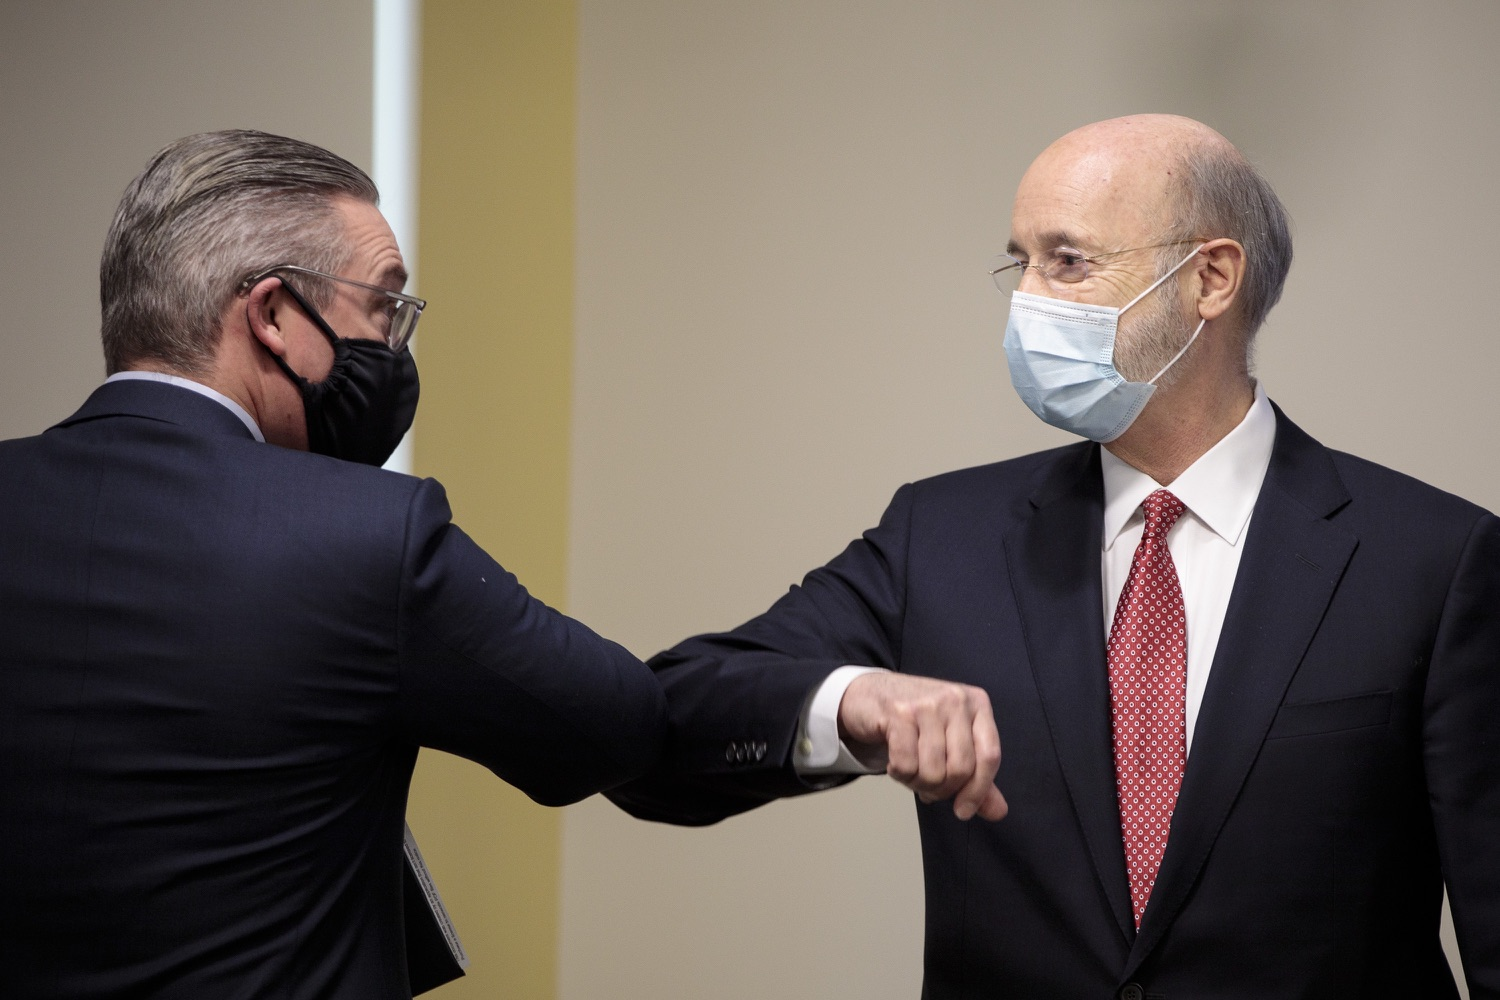 """<a href=""""https://filesource.wostreaming.net/commonwealthofpa/photo/18465_gov_electoralCollege_dz_20.jpg"""" target=""""_blank"""">⇣Download Photo<br></a>Pennsylvania Governor Tom Wolf and Philadelphia City Commissioner Al Schmidt speak after the event.  With Congress preparing to count Electoral College votes today, Governor Tom Wolf was joined by Secretary of State Kathy Boockvar and Philadelphia City Commissioner Al Schmidt to emphasize that Pennsylvania had a free, fair and secure election. All efforts by Congressional Republicans to overthrow the election results and subvert the will of the voters are disgraceful and must be rejected. Harrisburg, PA  January 6, 2021"""